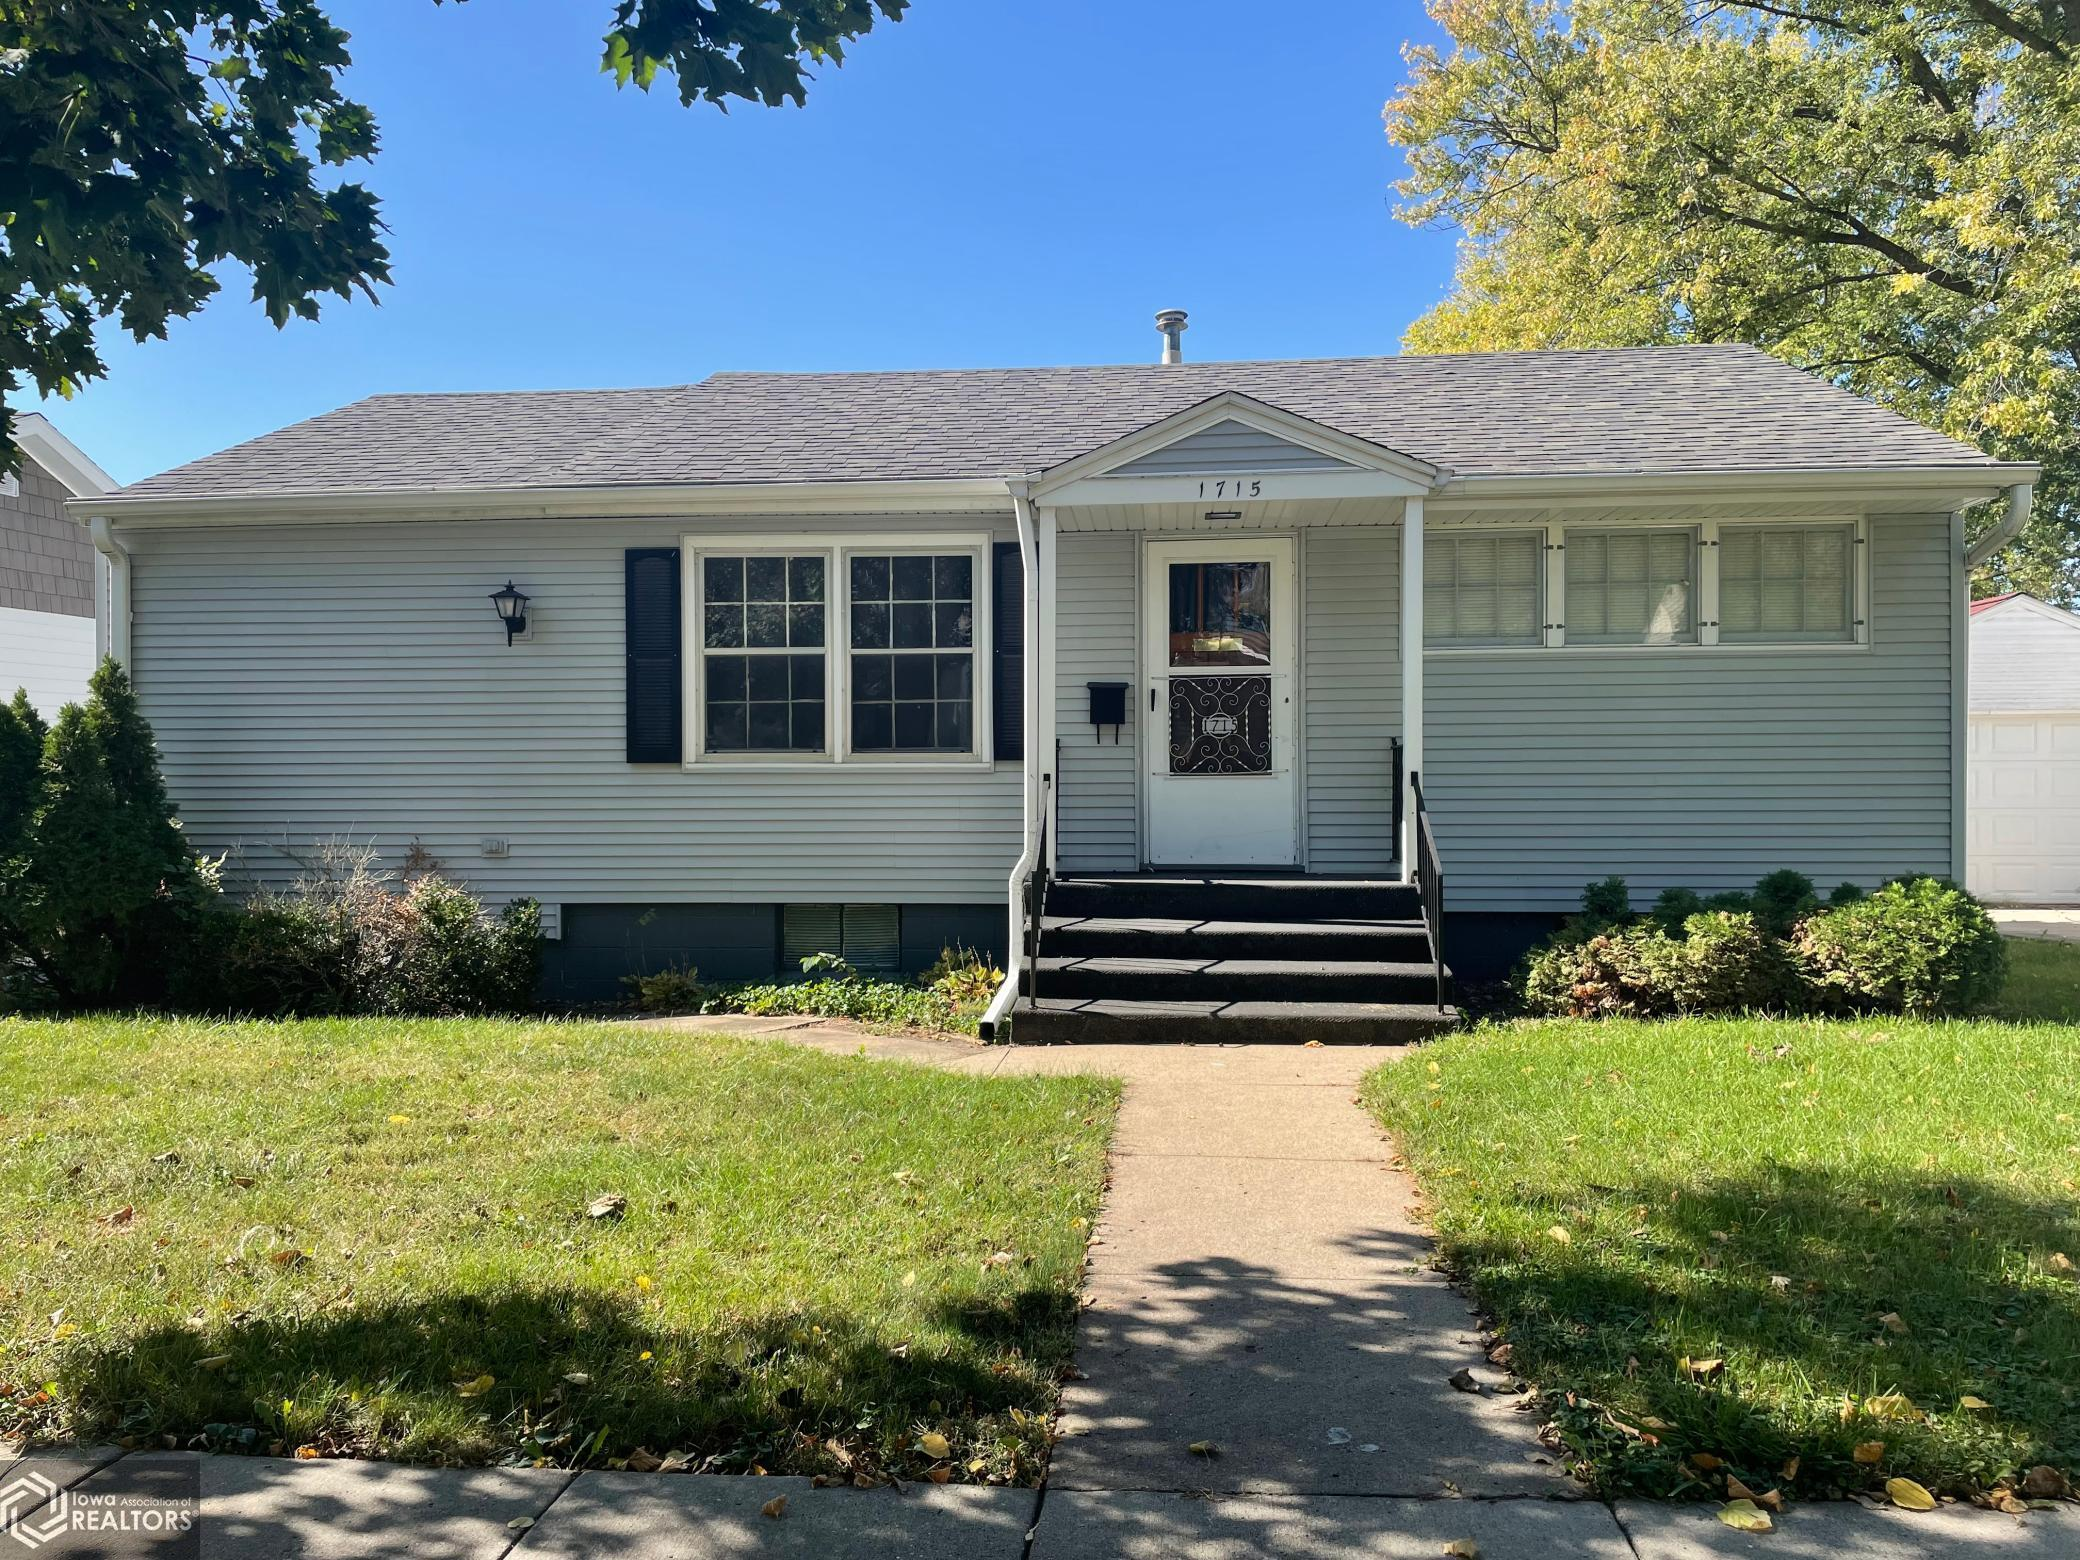 1715 3rd, Perry, Iowa 50220-1310, 2 Bedrooms Bedrooms, ,1 BathroomBathrooms,Single Family,For Sale,3rd,6113941